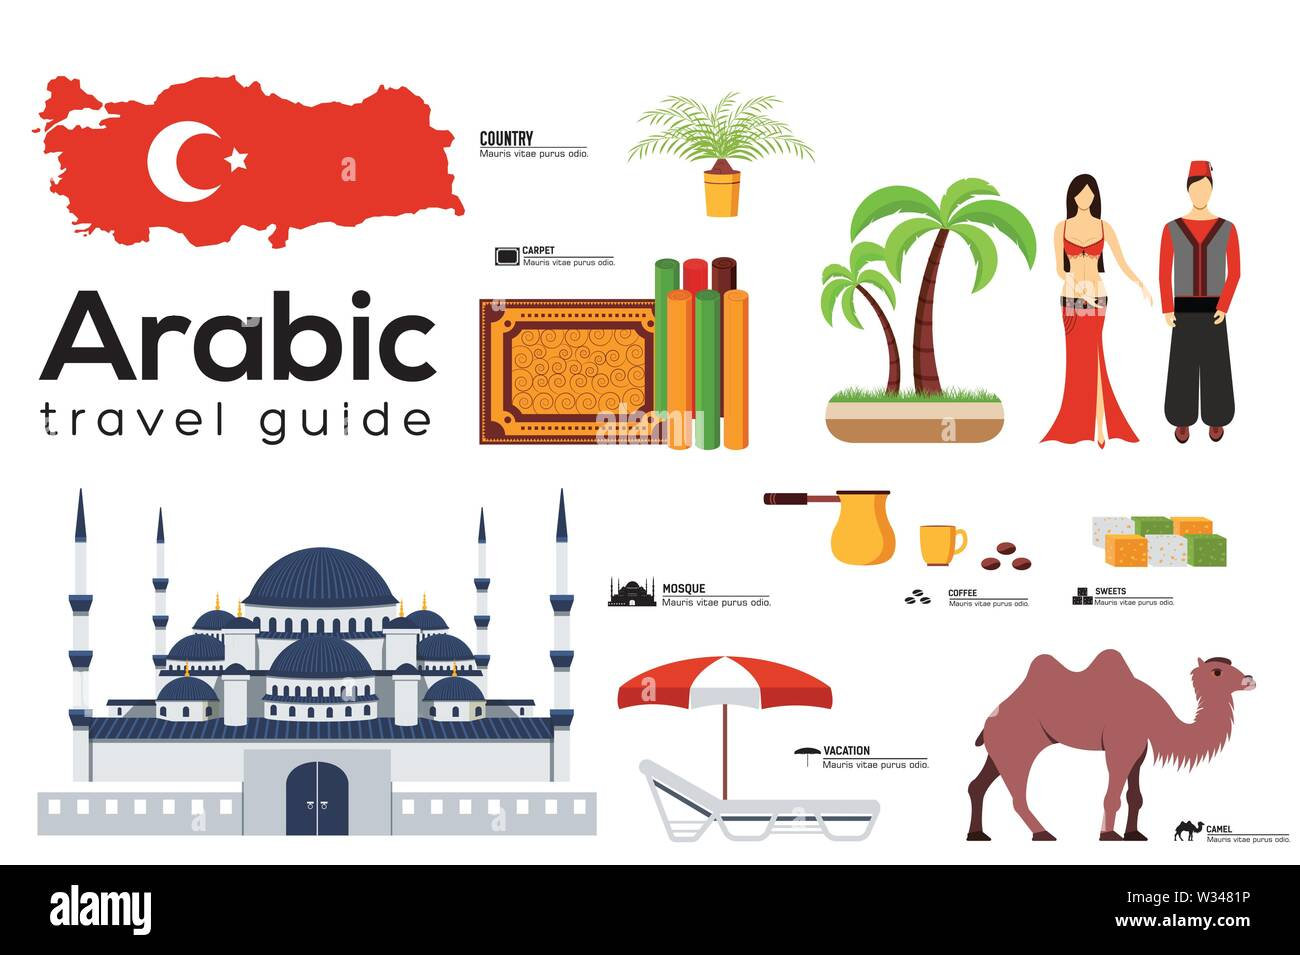 Arabic travel guide template. Set of turkish landmarks, cuisine, traditions flat icons, pictograms on white. Sightseeing attractions and cultural symb - Stock Image